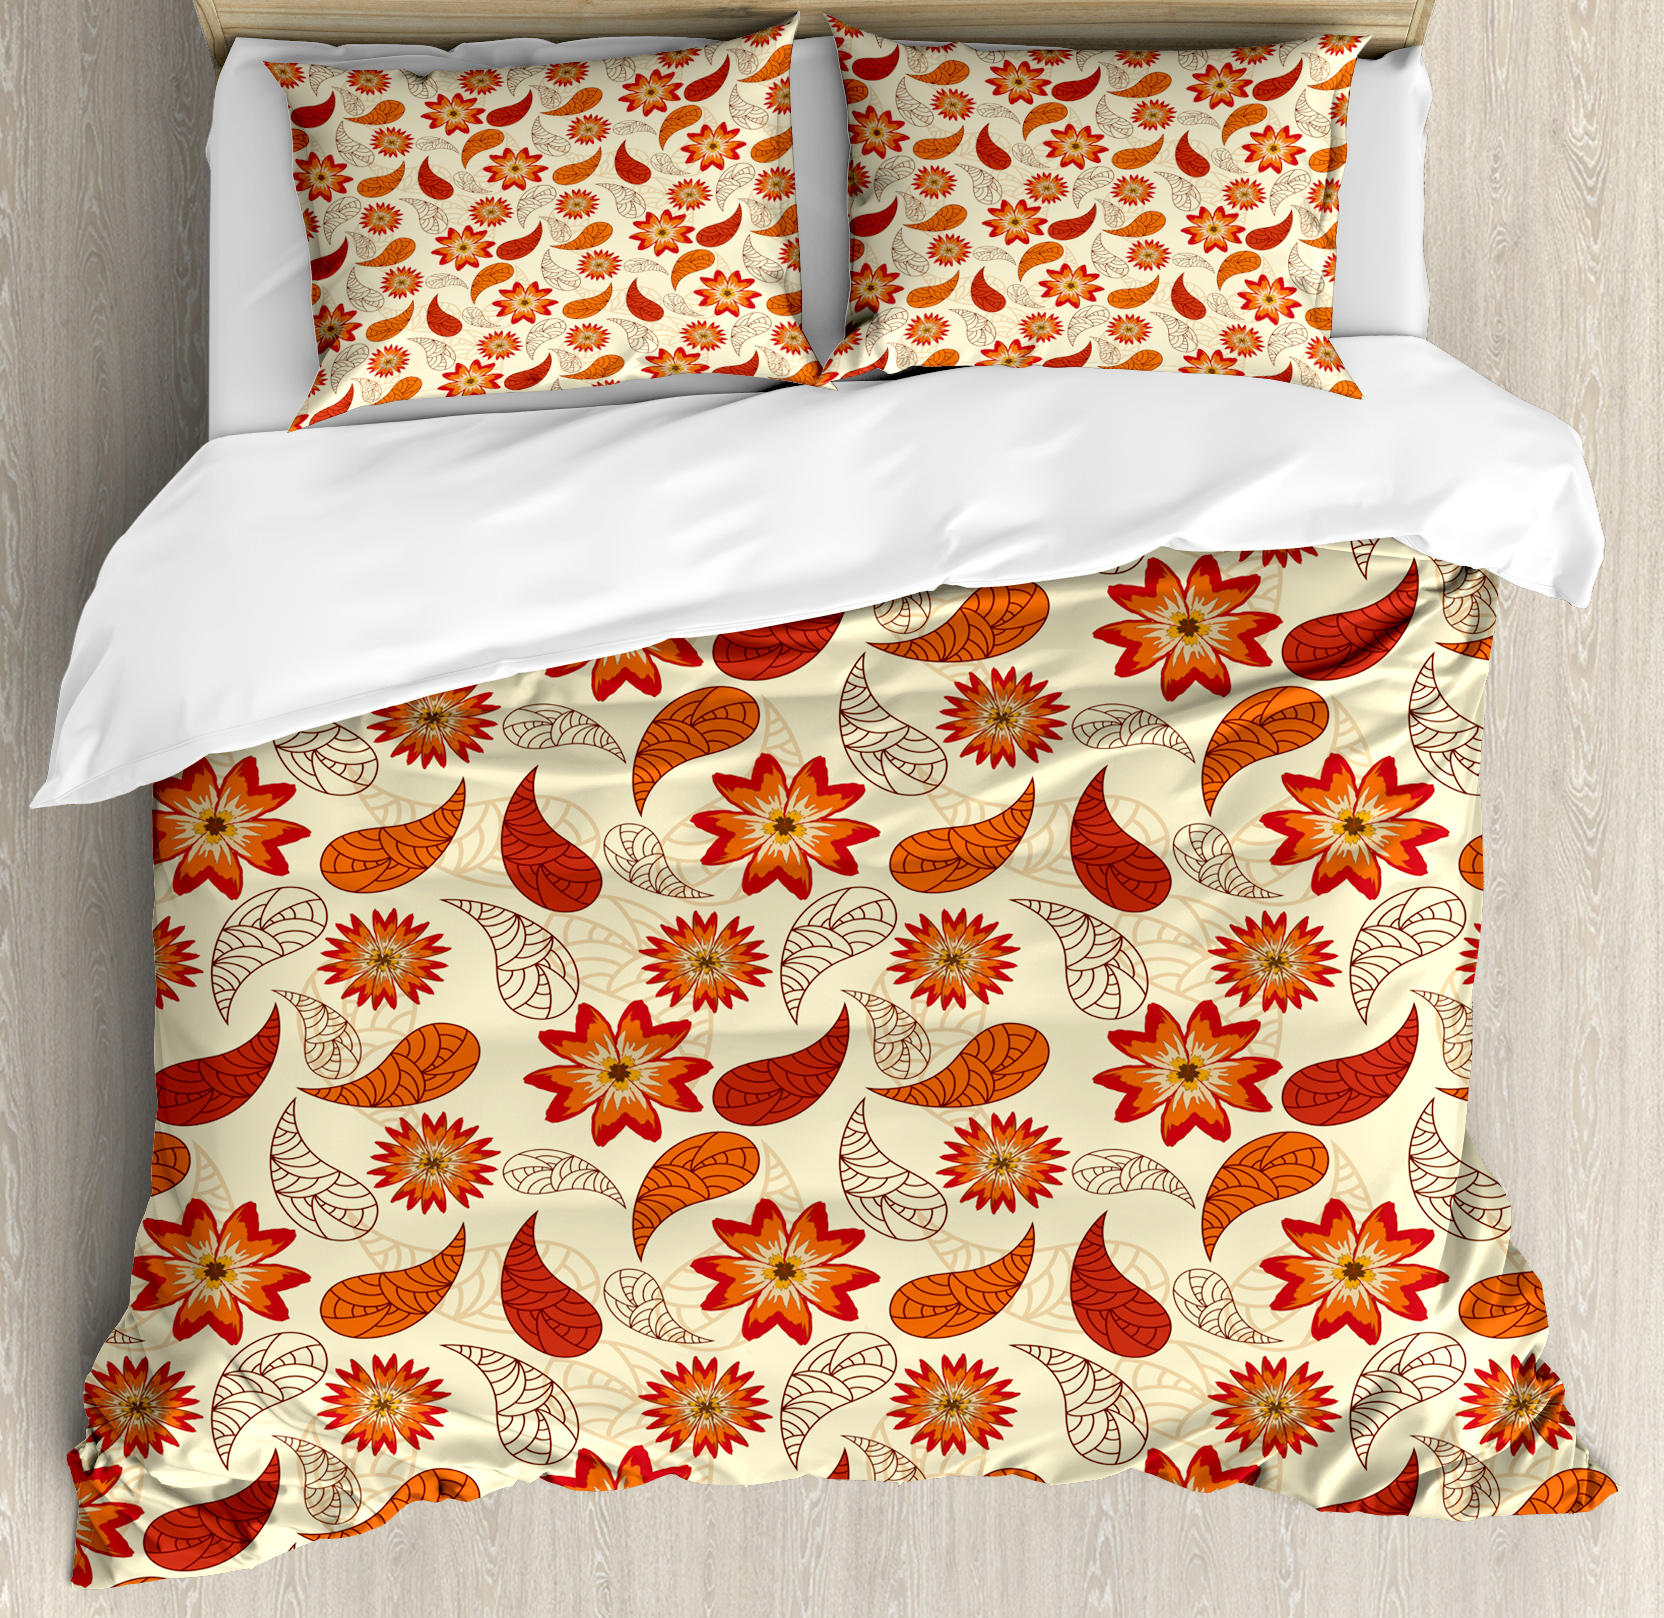 Orange King Size Duvet Cover Set, Red Poppy Flowers in Retro Style and Leaves Artistic Flourish Paisley Pattern, Decorative 3 Piece Bedding Set with 2 Pillow Shams, Orange Red Peach, by Ambesonne